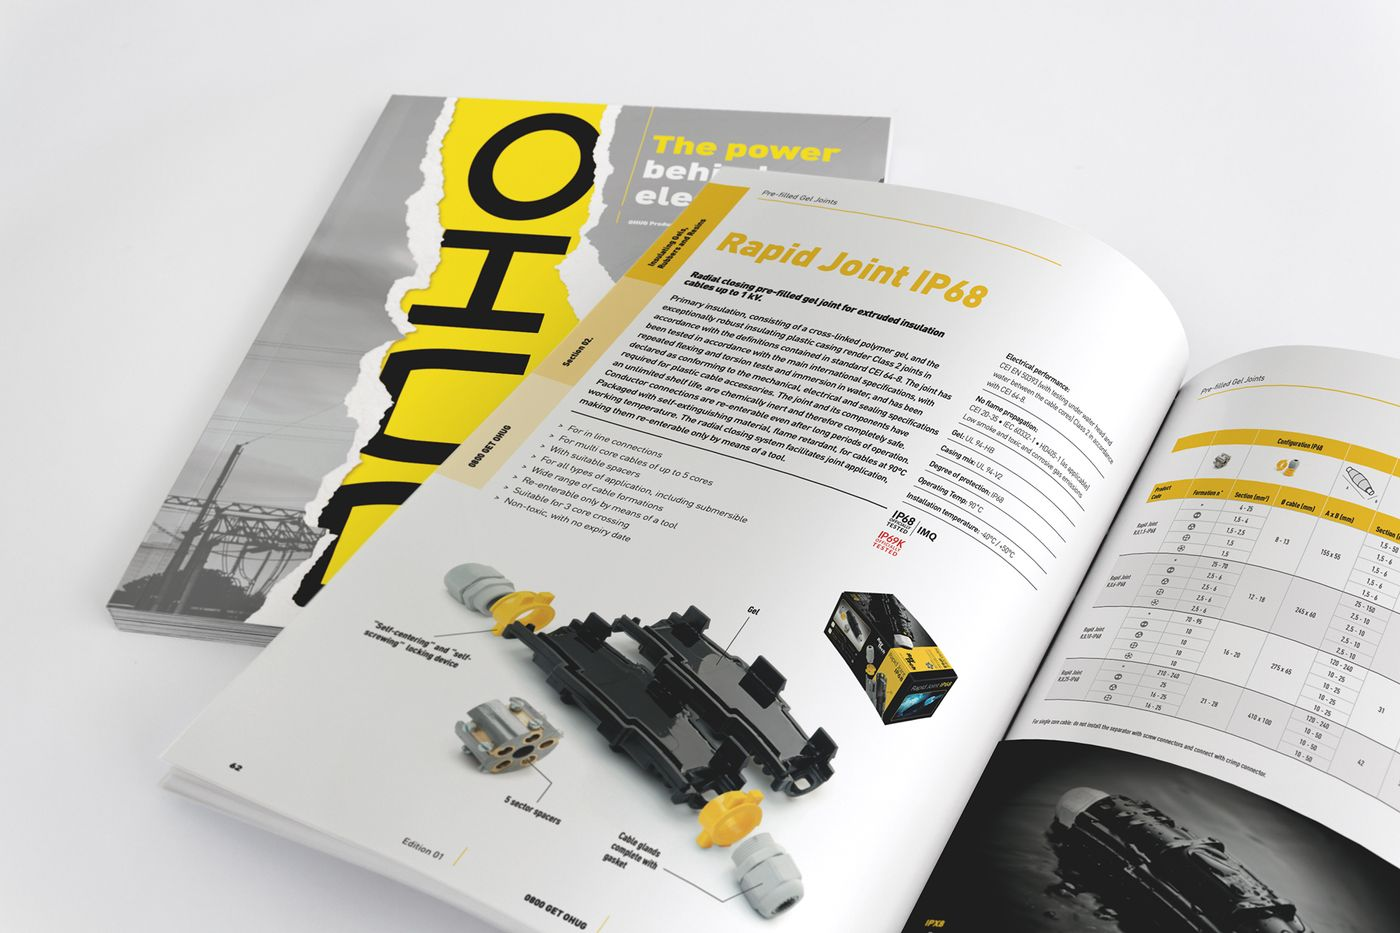 OHUG Product Catalogue rapid joint diagram